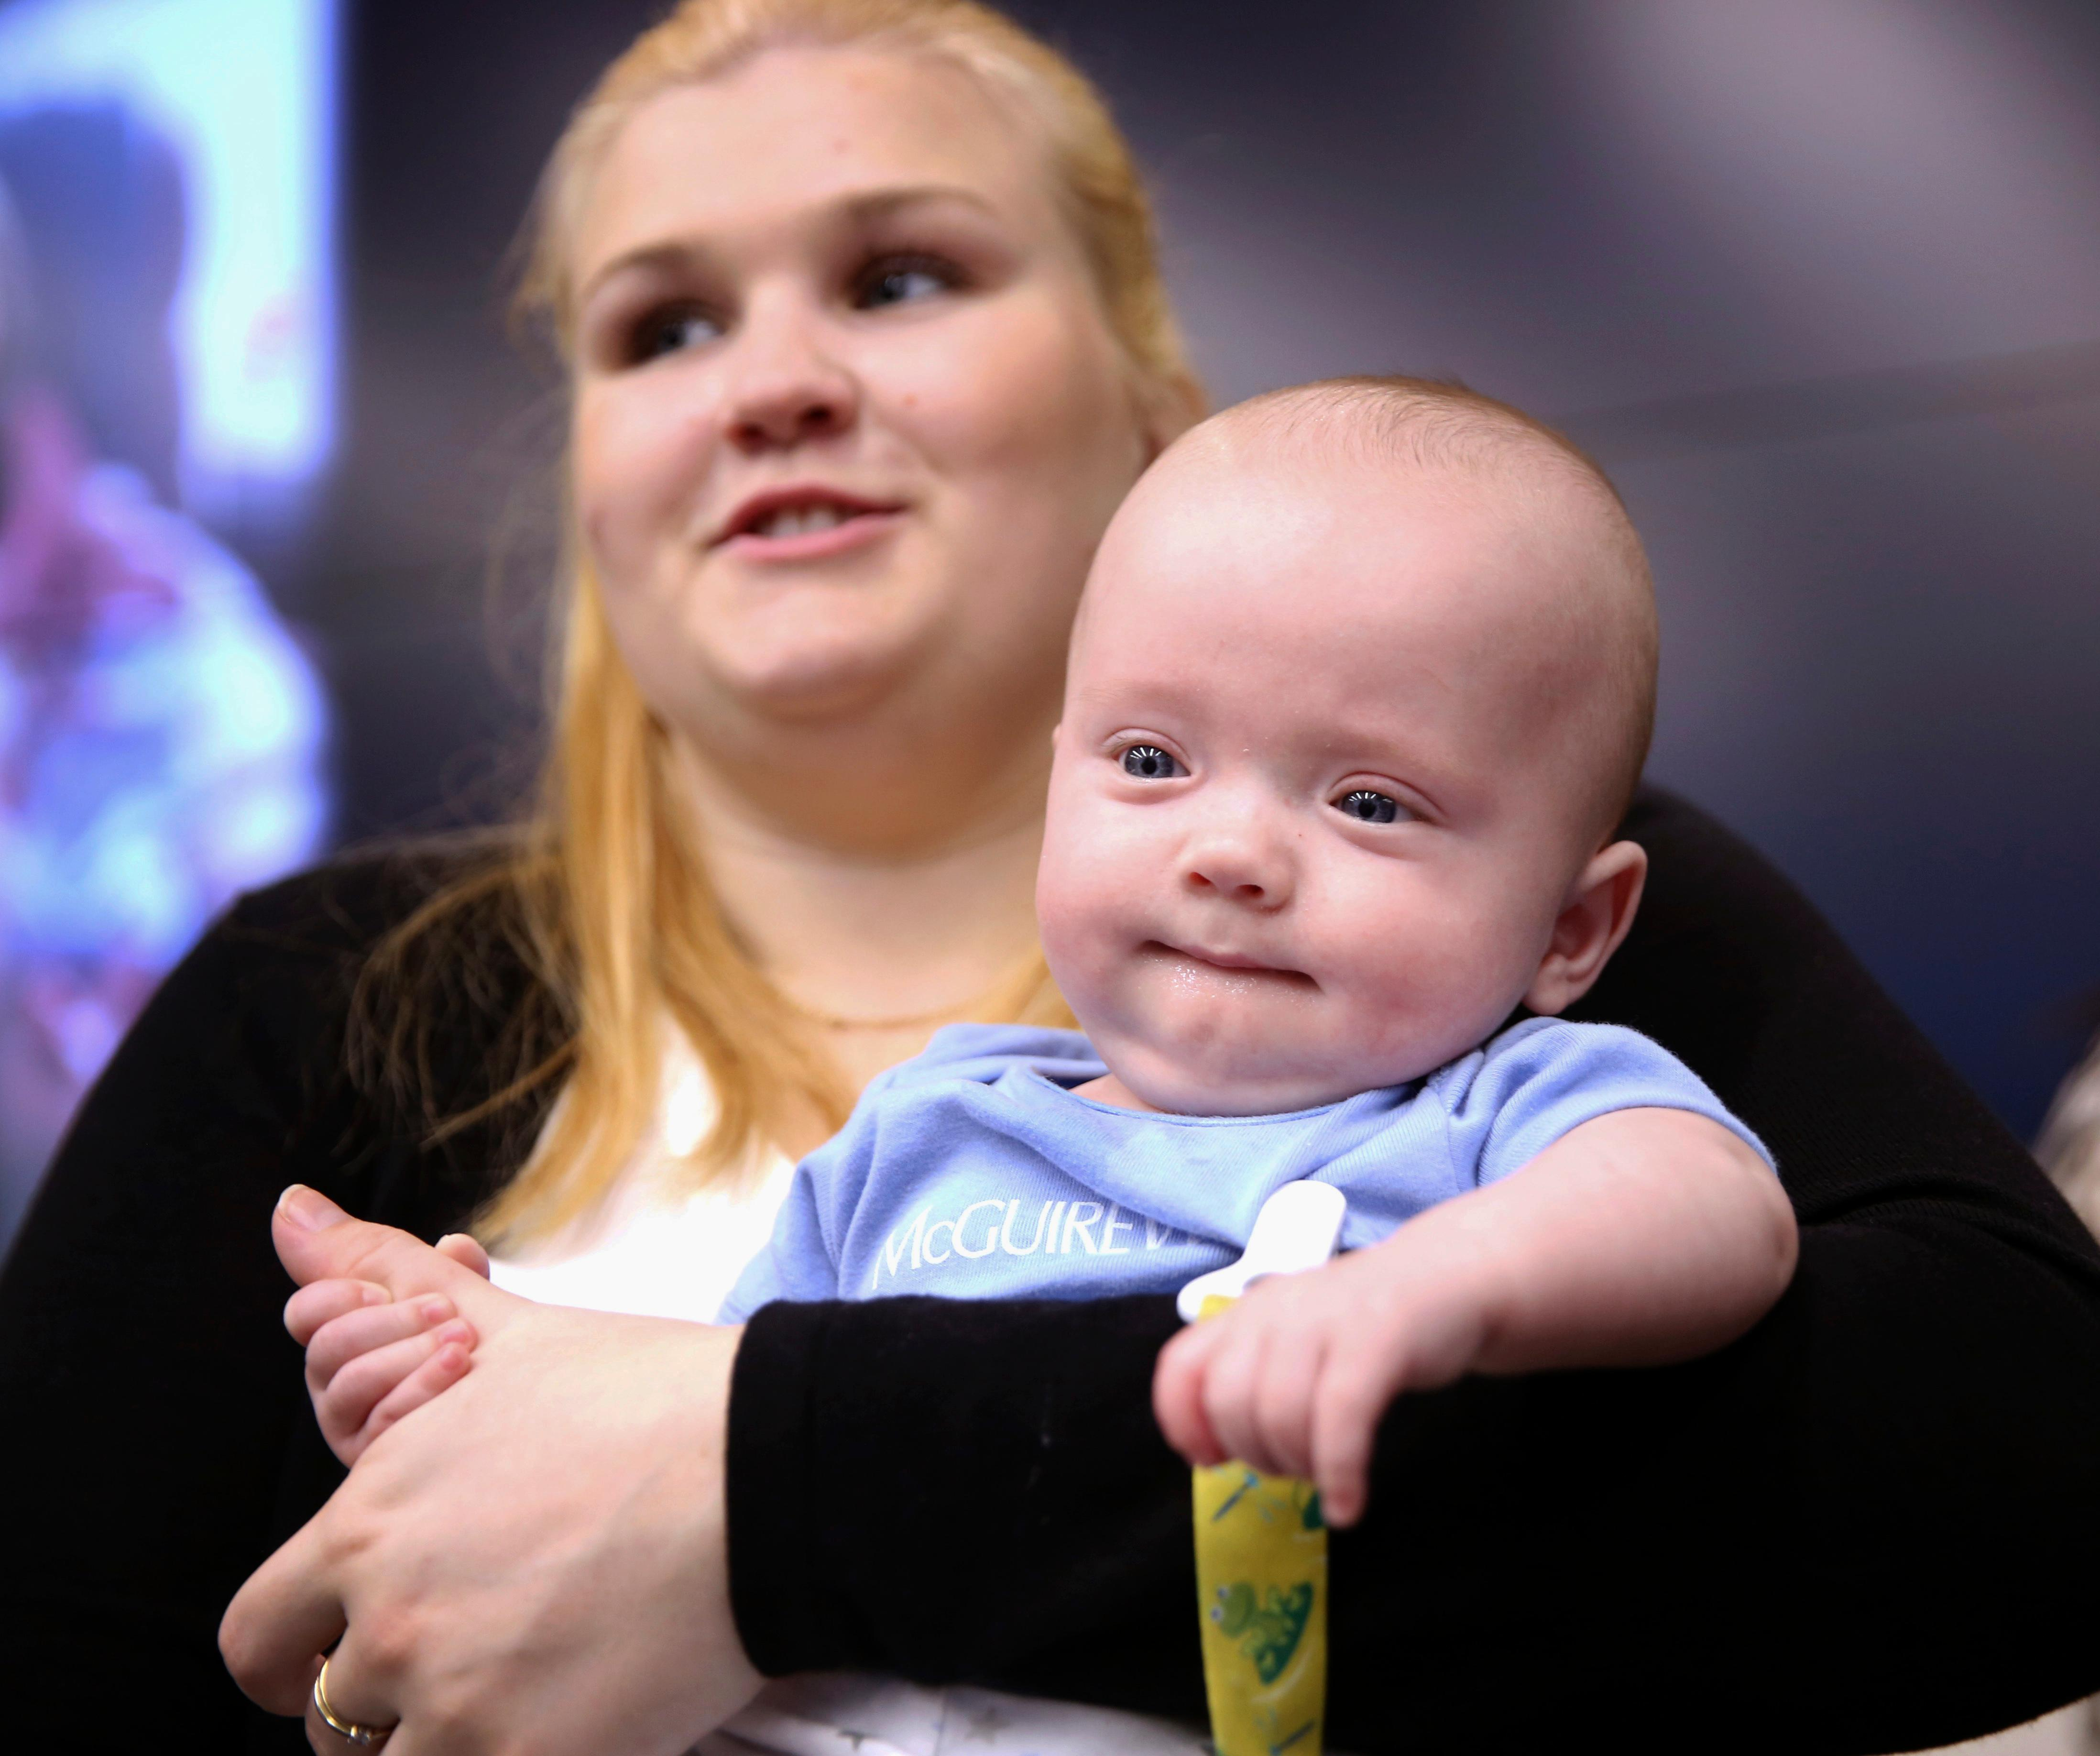 "Baudinet family friend Jennifer Bolin holds Luke Thomas Baudinet while the quintuplets' family is greeted at McGuireWoods on Tuesday May 16, 2017 in Richmond, Va. The Baudinet quintuplets made their public debut Tuesday in Richmond. Ava Louise, Clara Catherine, Camille ""Millie"" Whitney, Luke Thomas, and Isabelle Frances were born Dec. 4 in Arizona.   (Shelby Lum/Richmond Times-Dispatch via AP)"